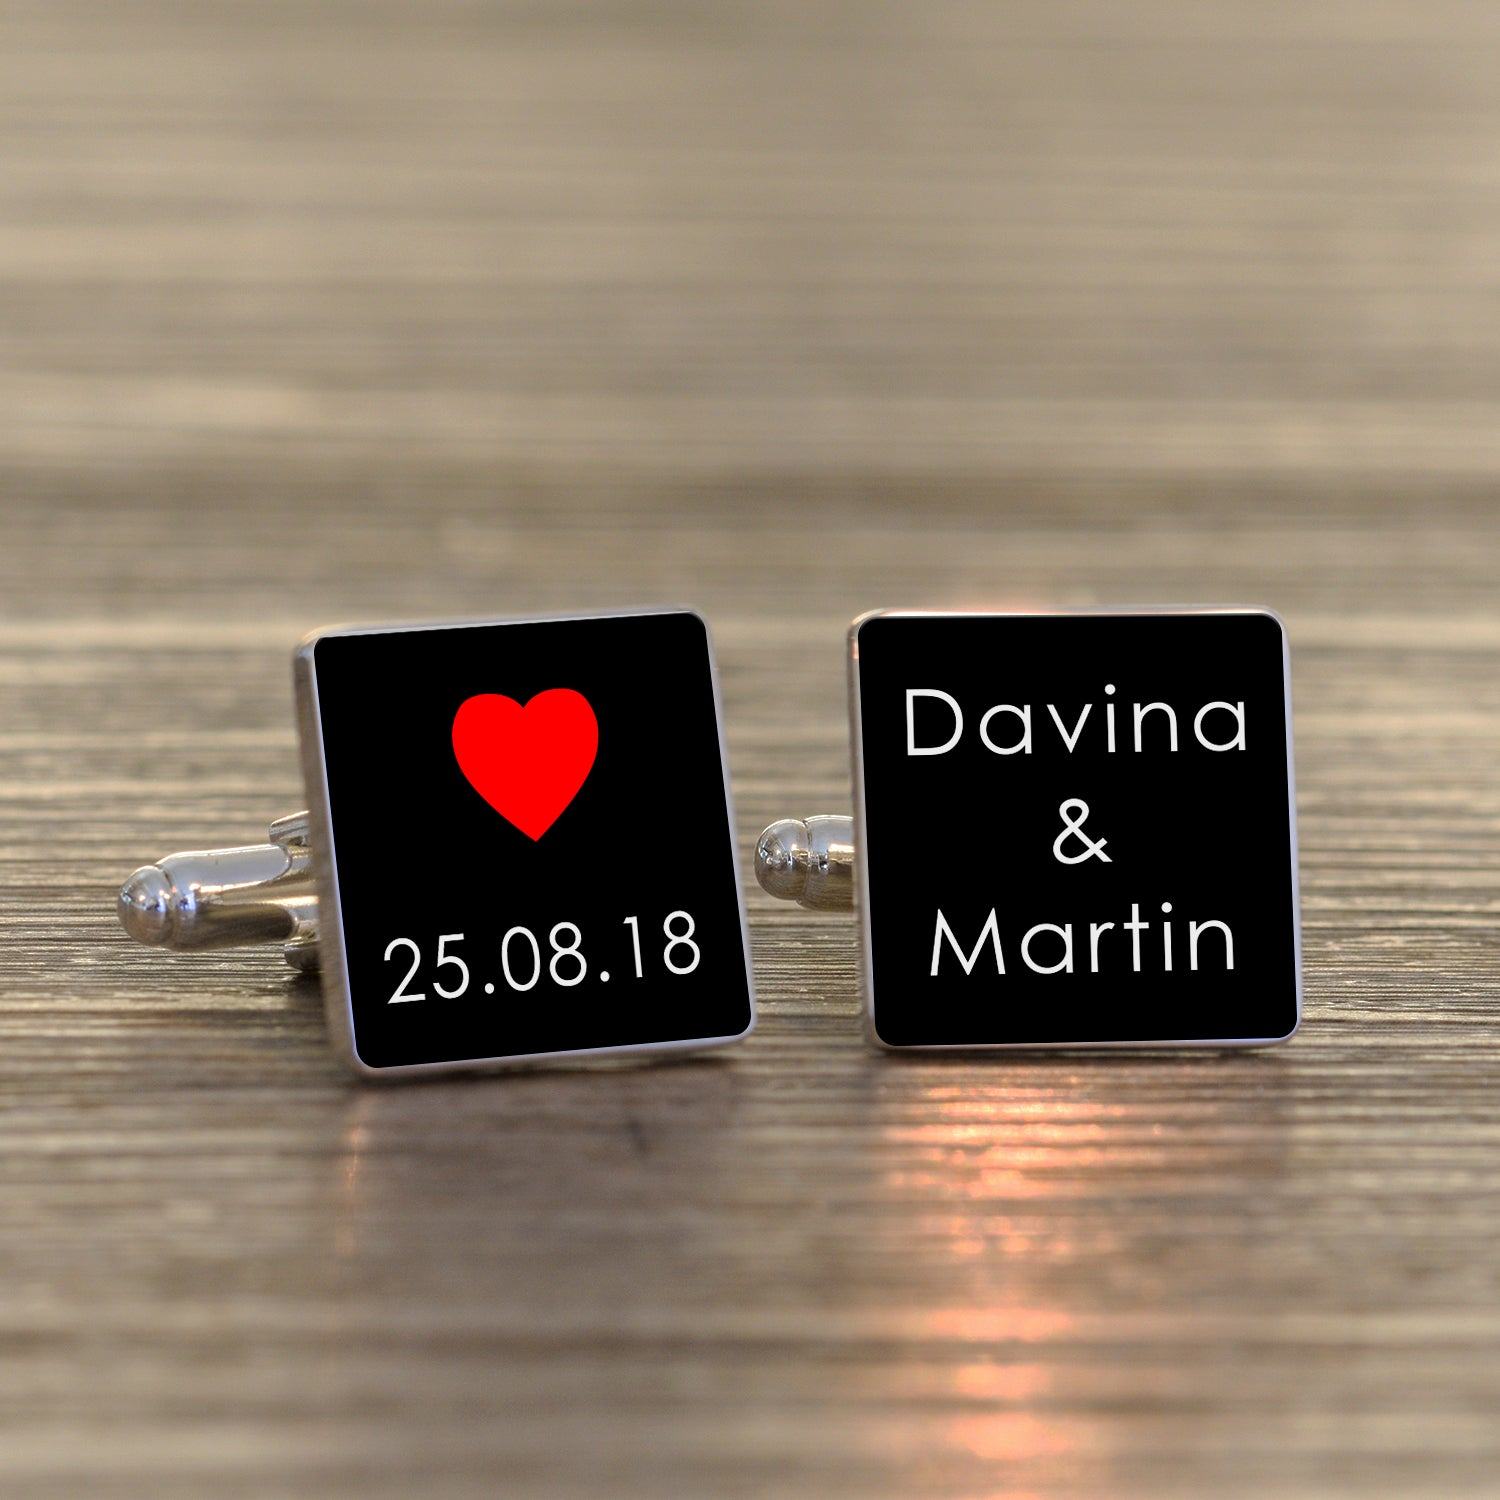 Date & Names Cufflinks, Clothing & Accessories by Low Cost Gifts